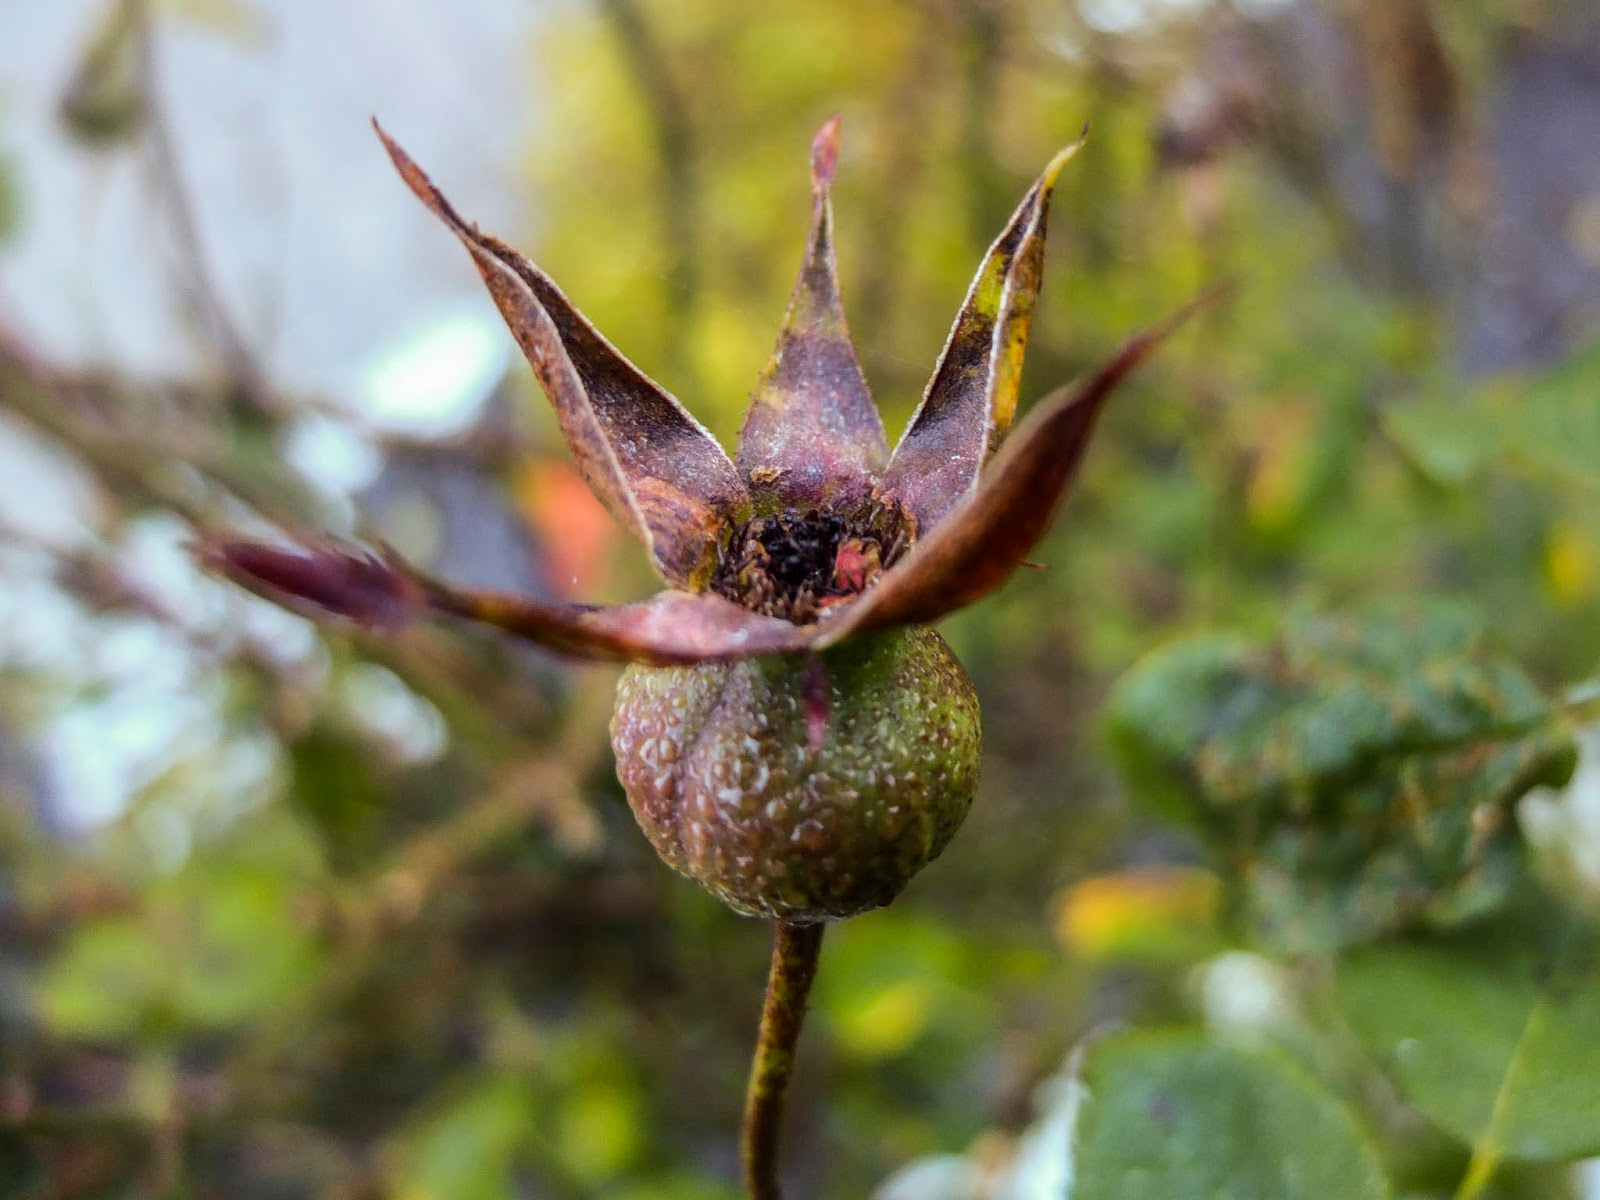 A close up of a browning rose hip covered in dew.